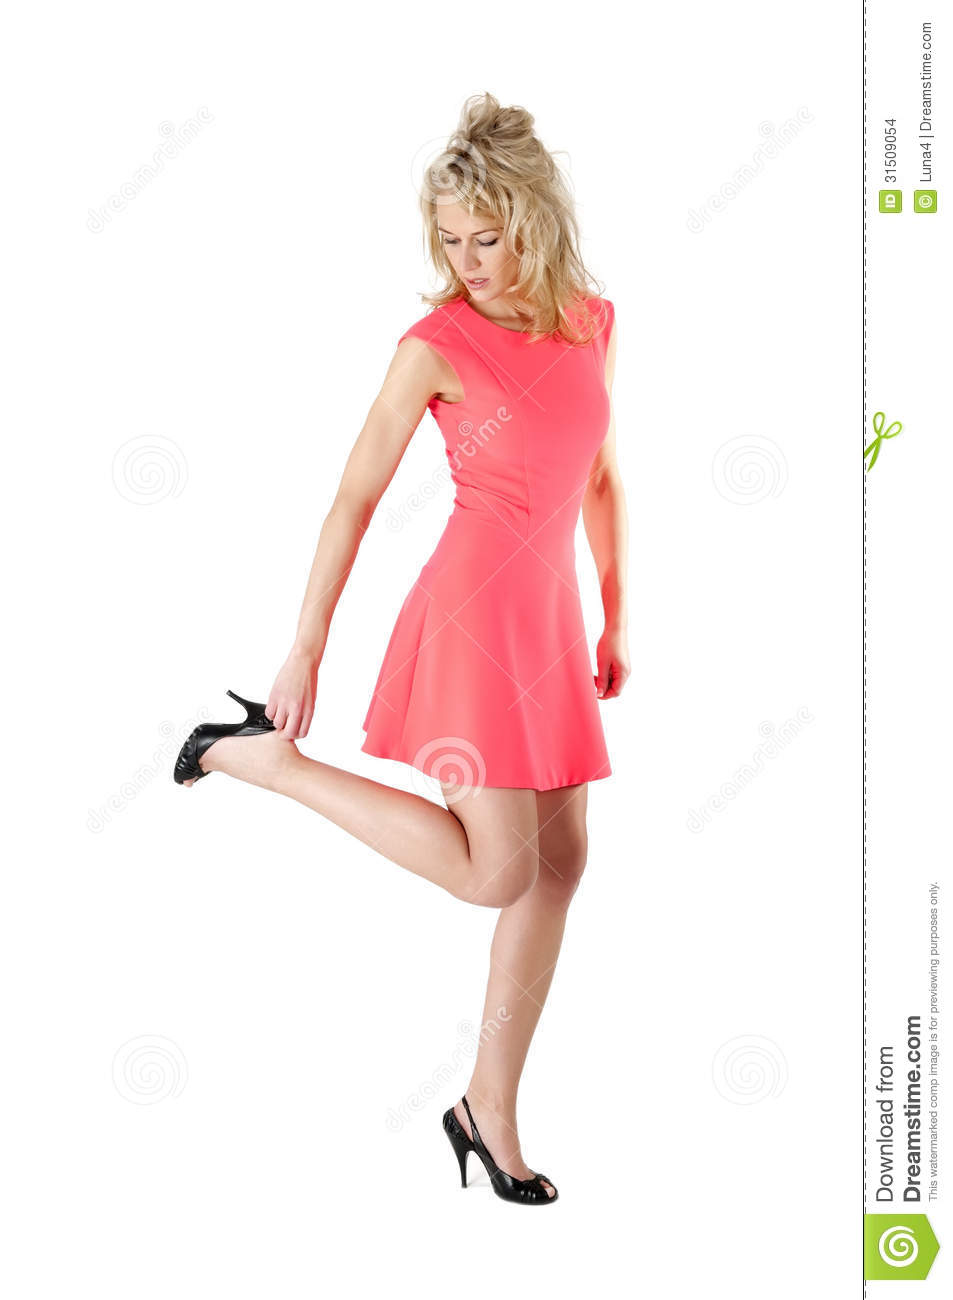 Woman Putting On High Heel Shoes Stock Images - Image ...